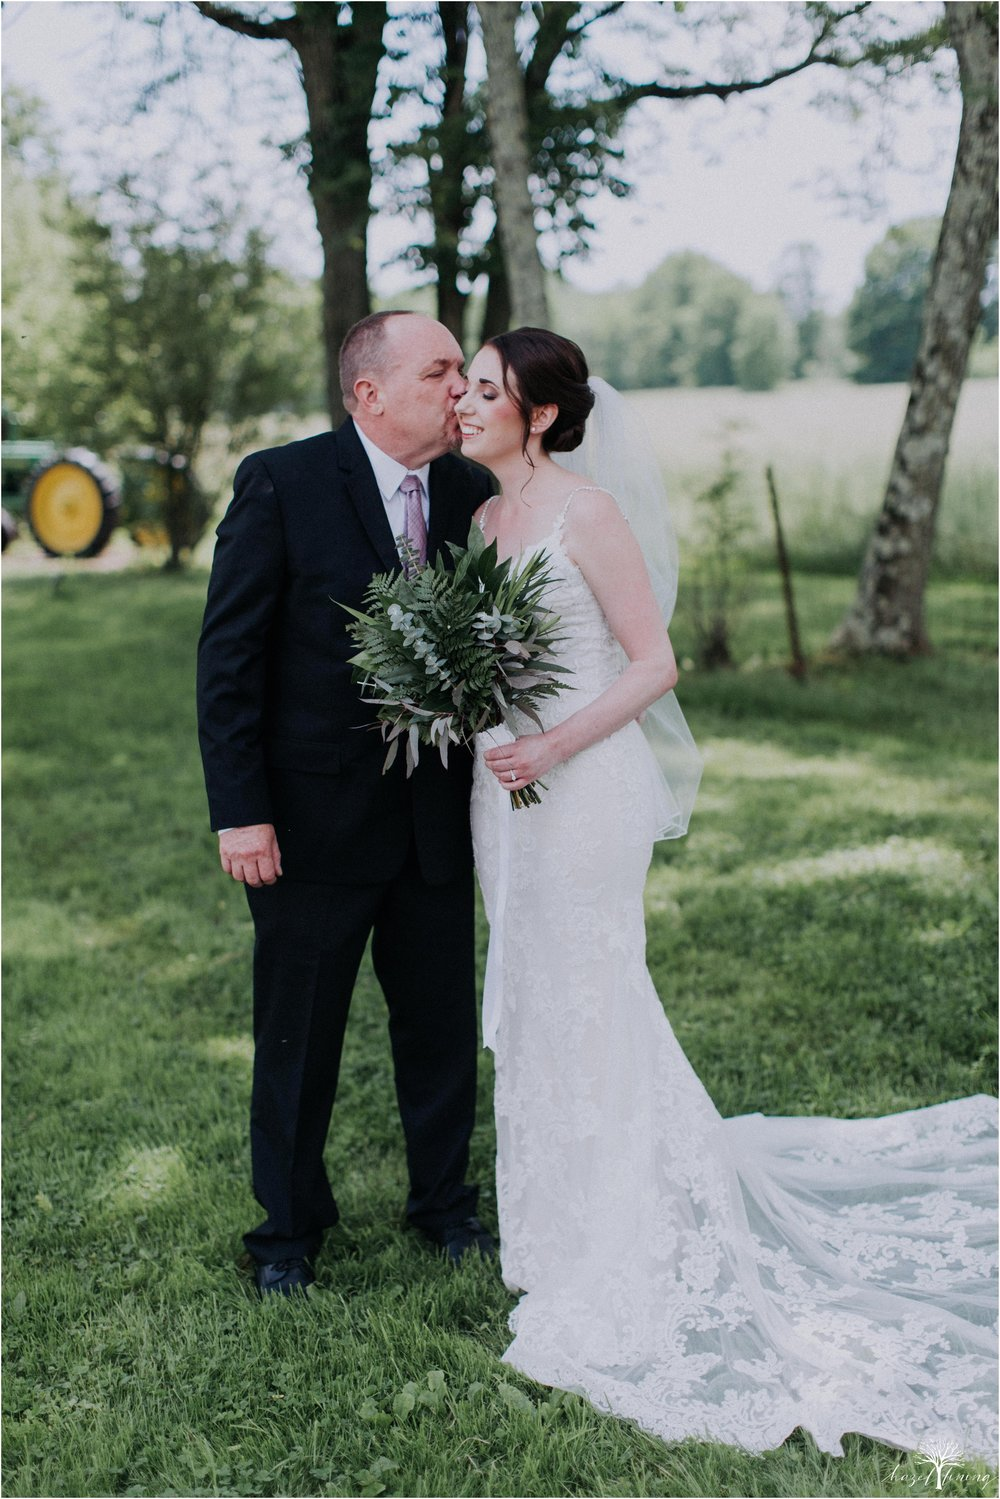 hazel-lining-travel-wedding-elopement-photography-lisa-landon-shoemaker-the-farm-bakery-and-events-bucks-county-quakertown-pennsylvania-summer-country-outdoor-farm-wedding_0023.jpg